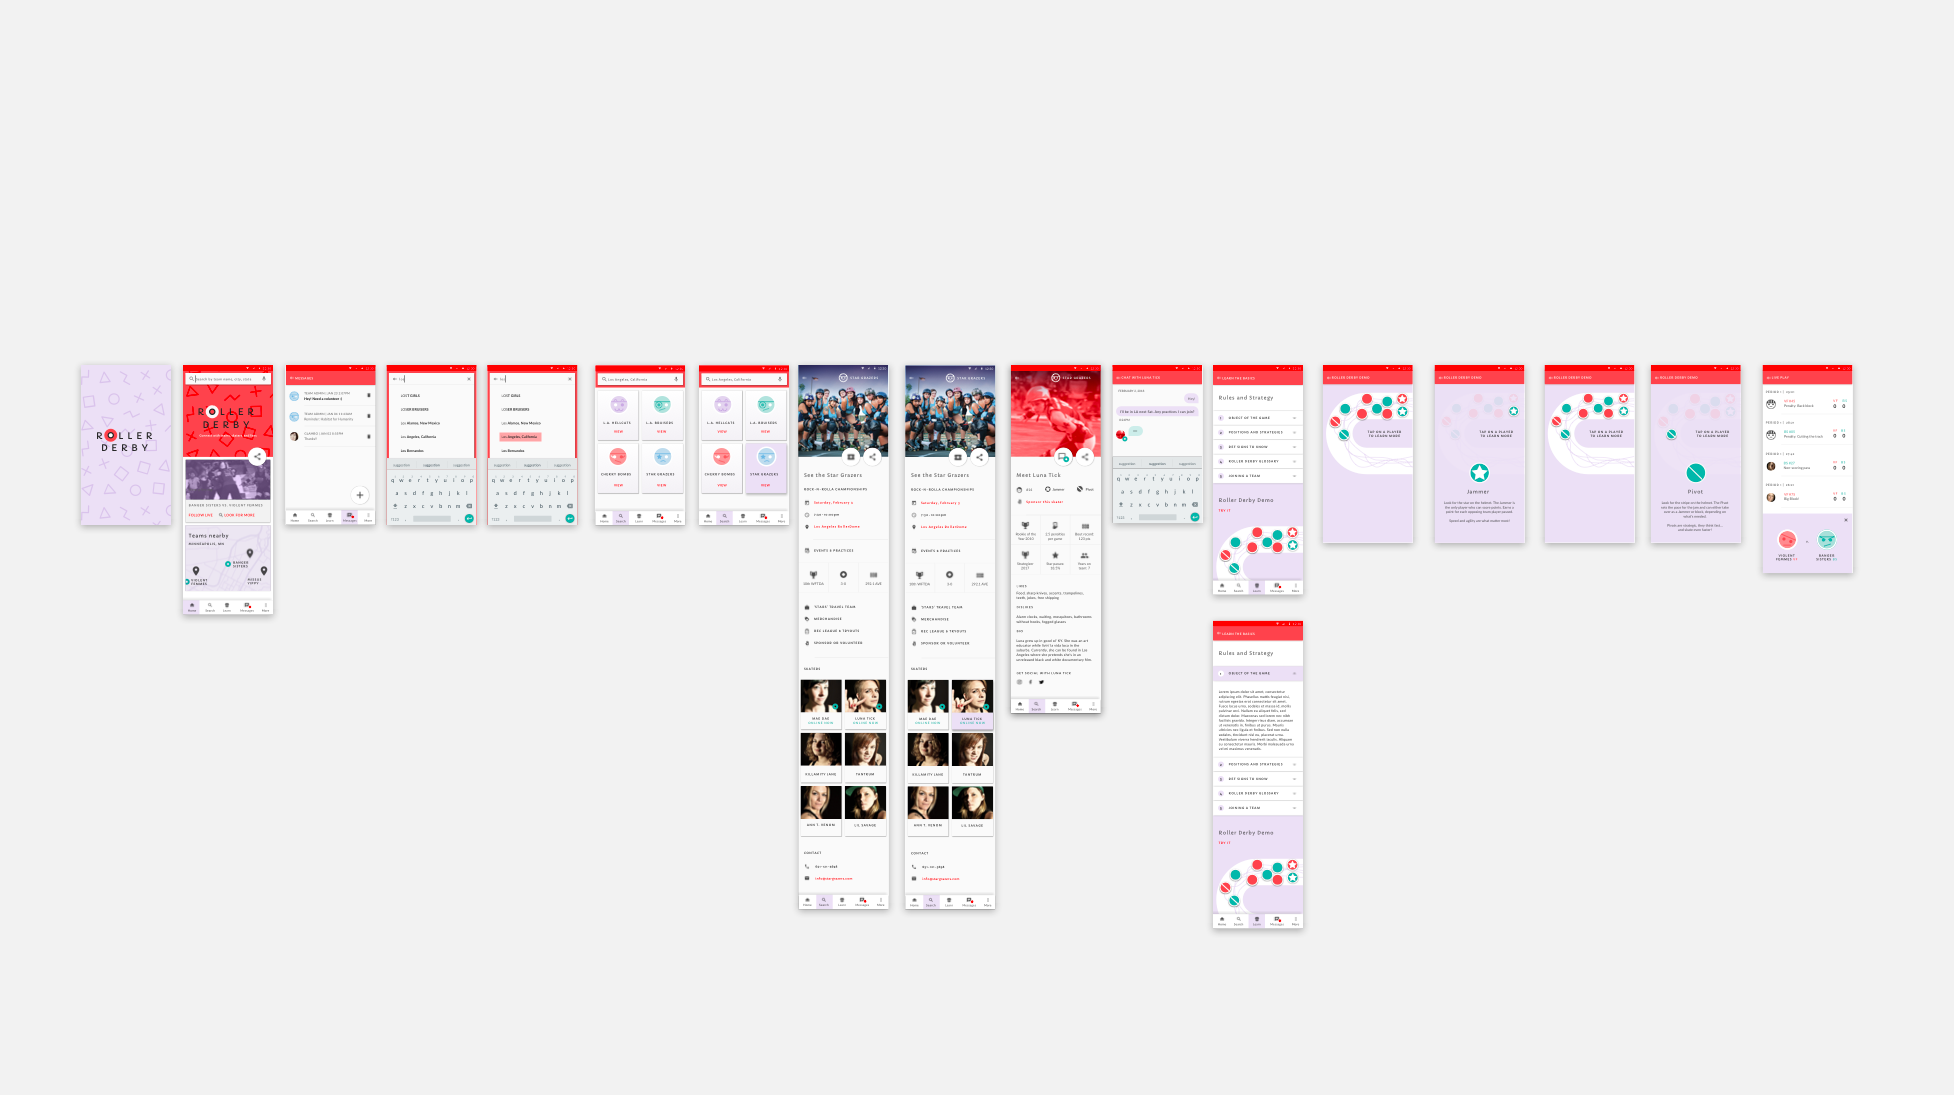 I developed a set of wireframes, with features that address the key problems that were mentioned during the interview process.